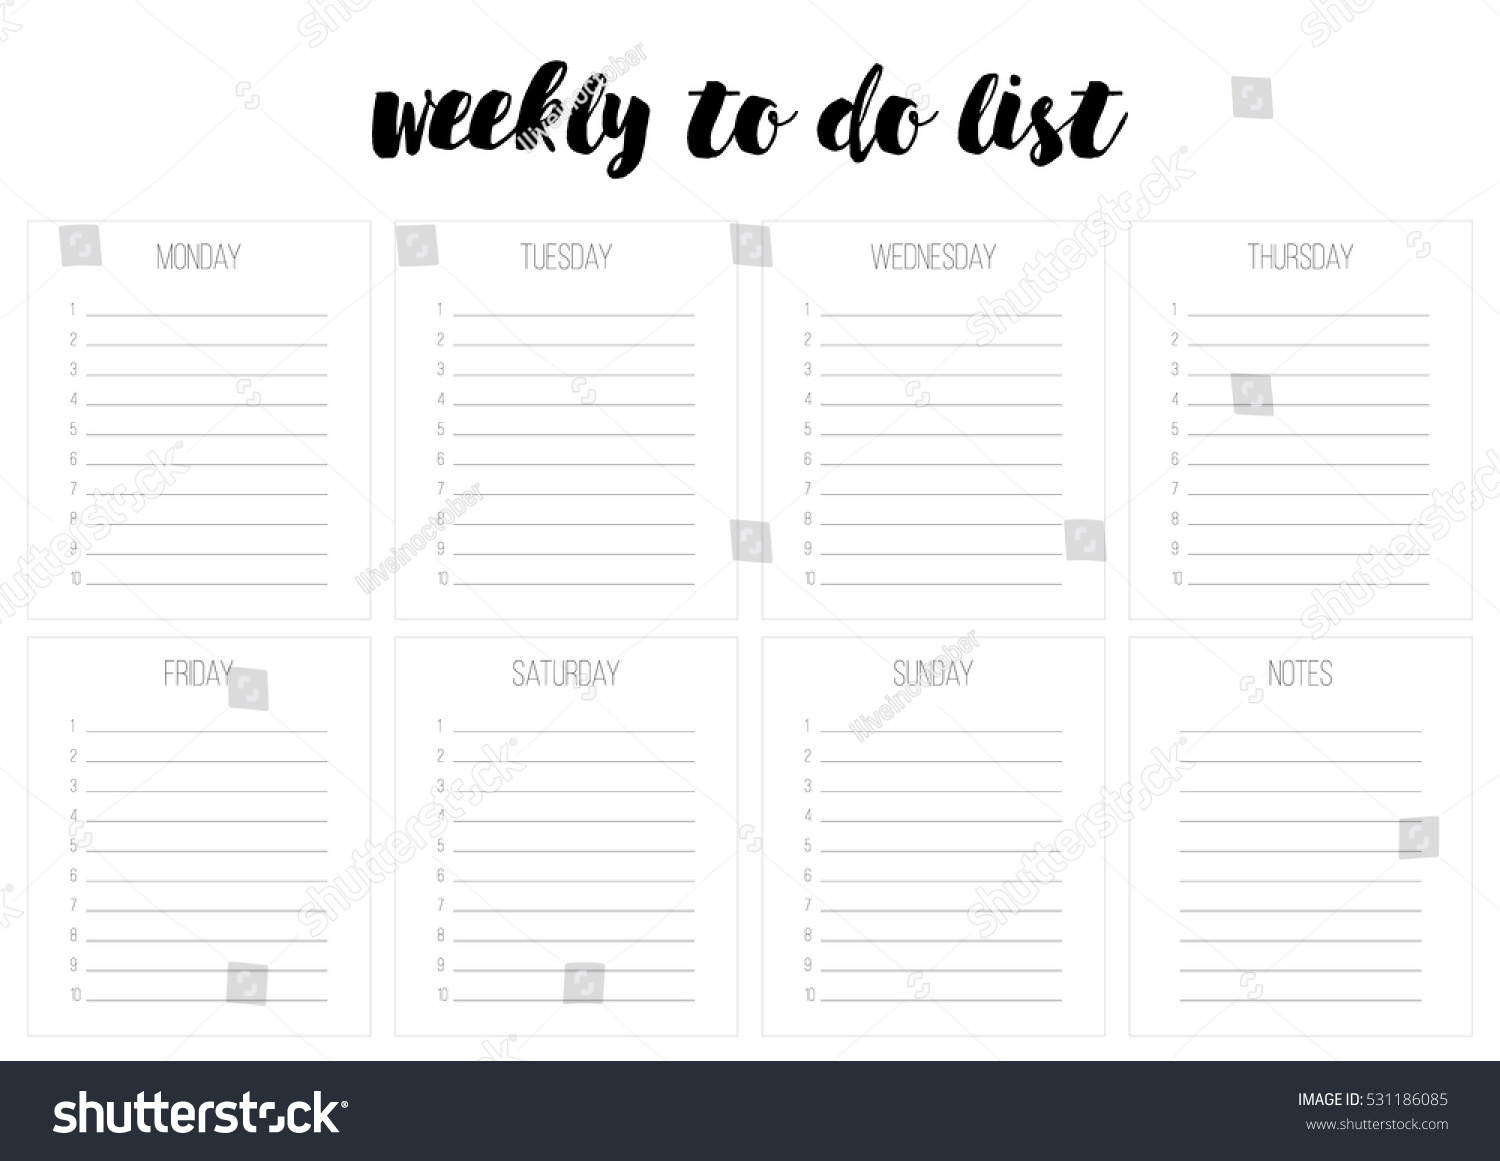 weekly do list vector template blank のベクター画像素材